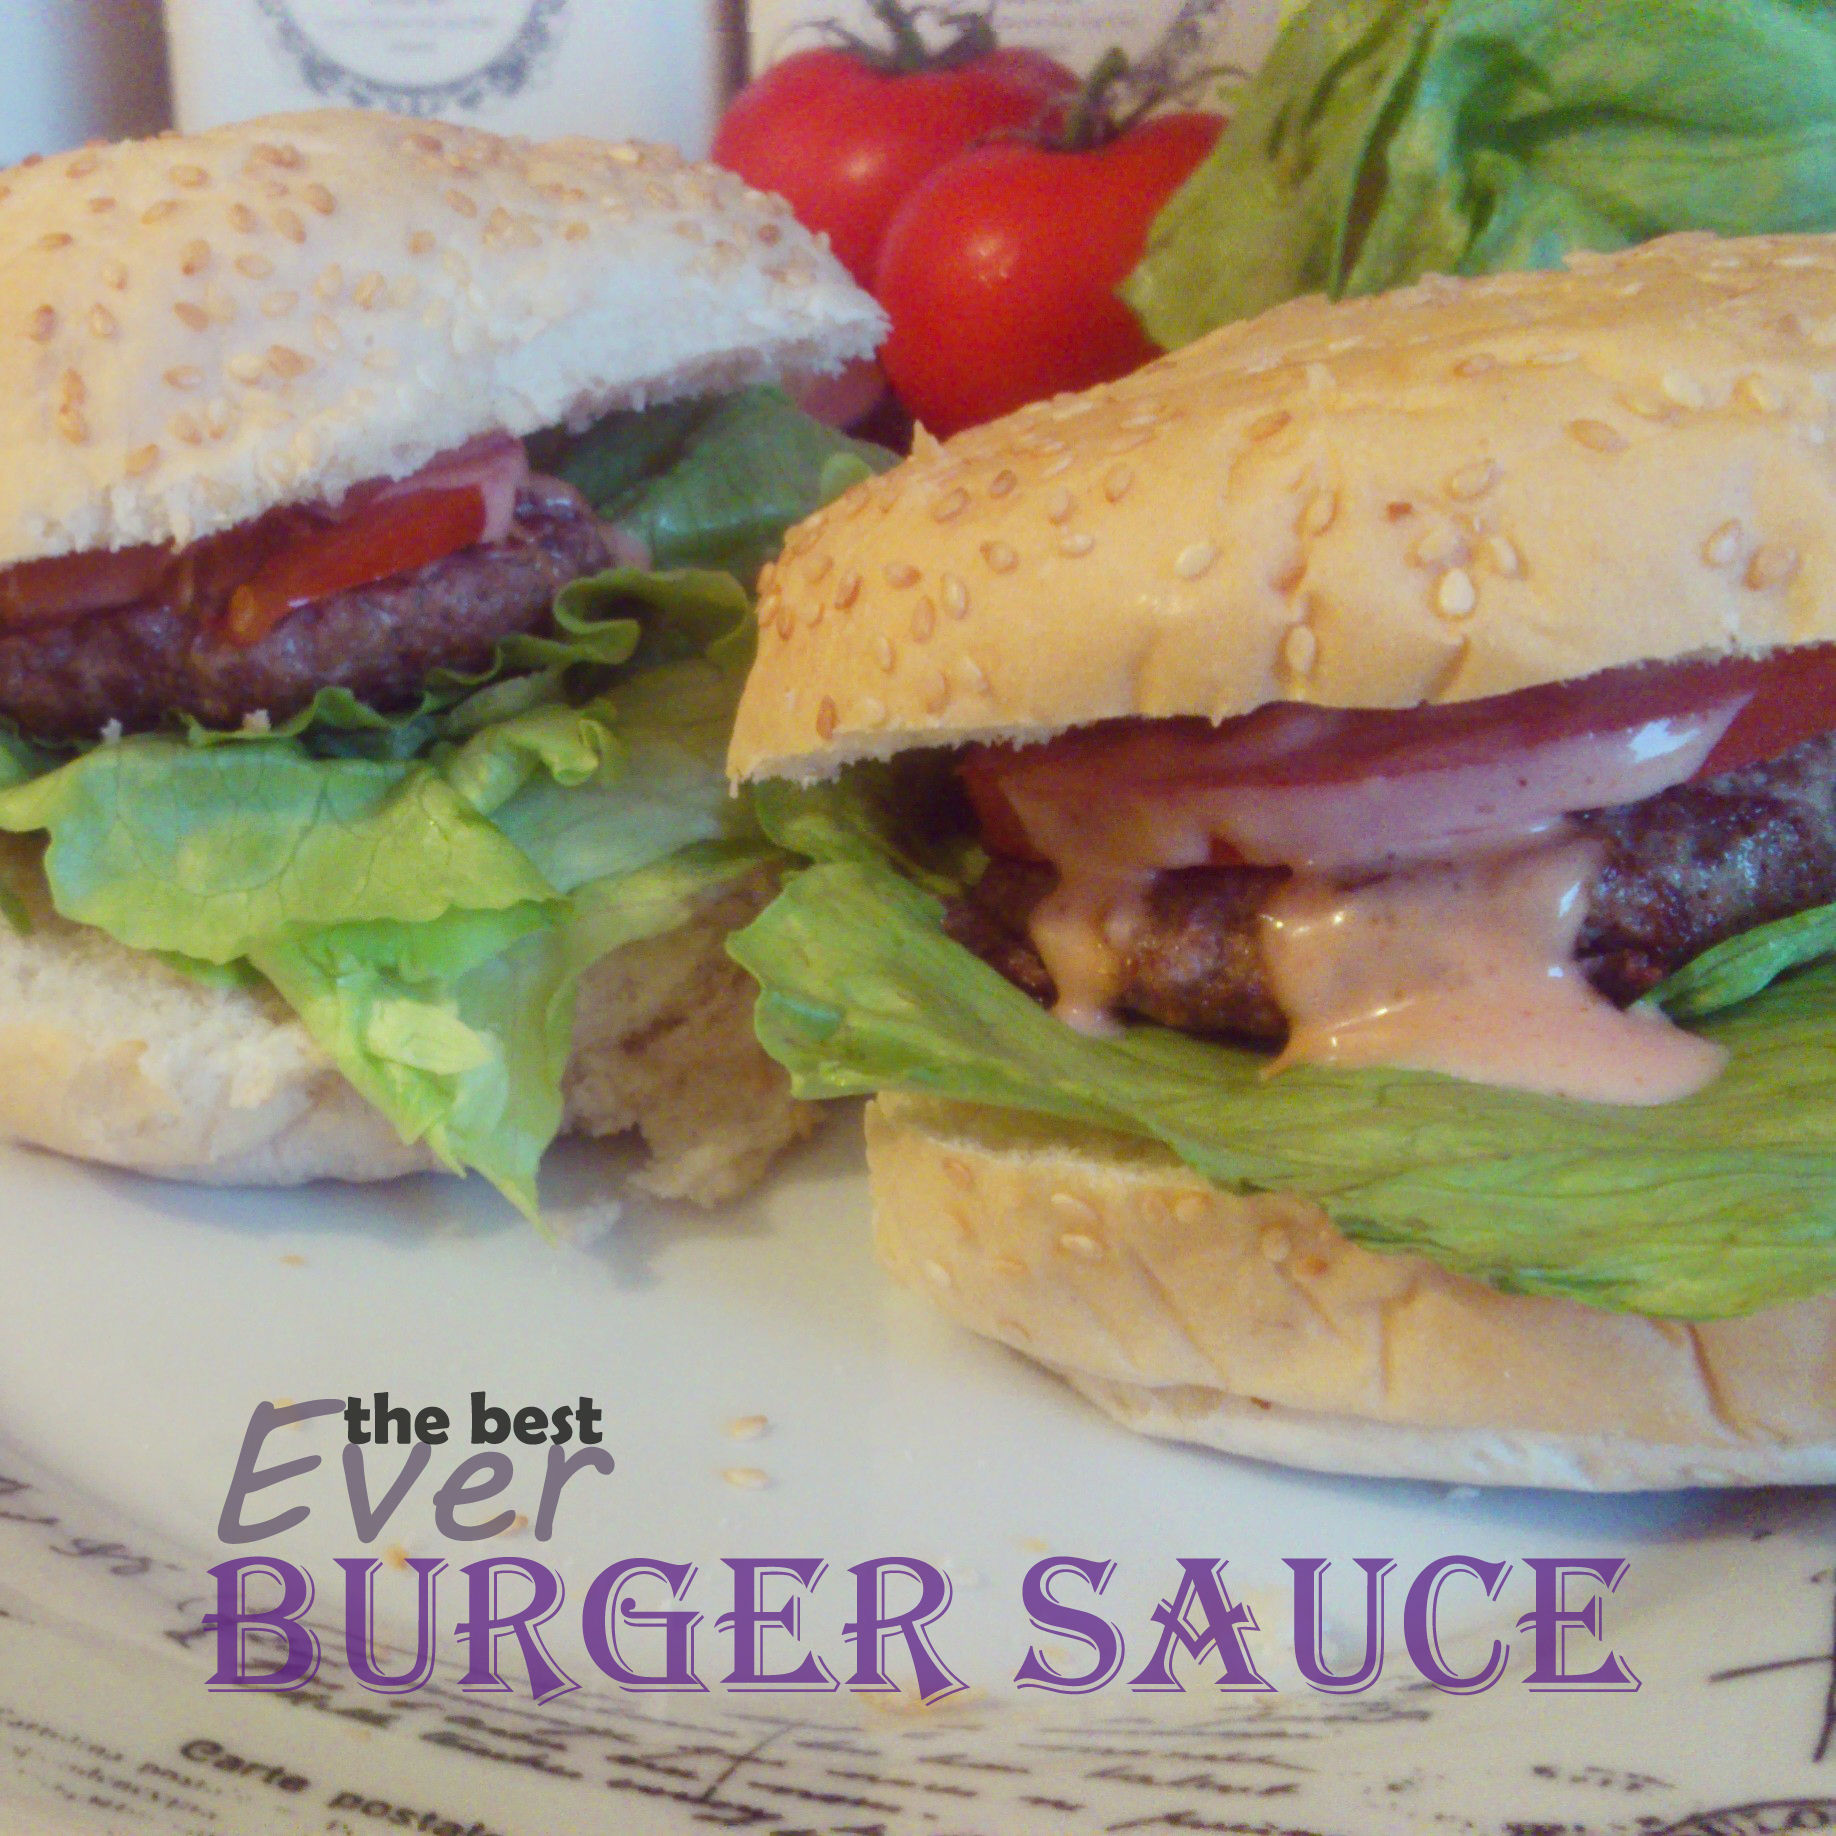 The Best Ever Burger Sauce!